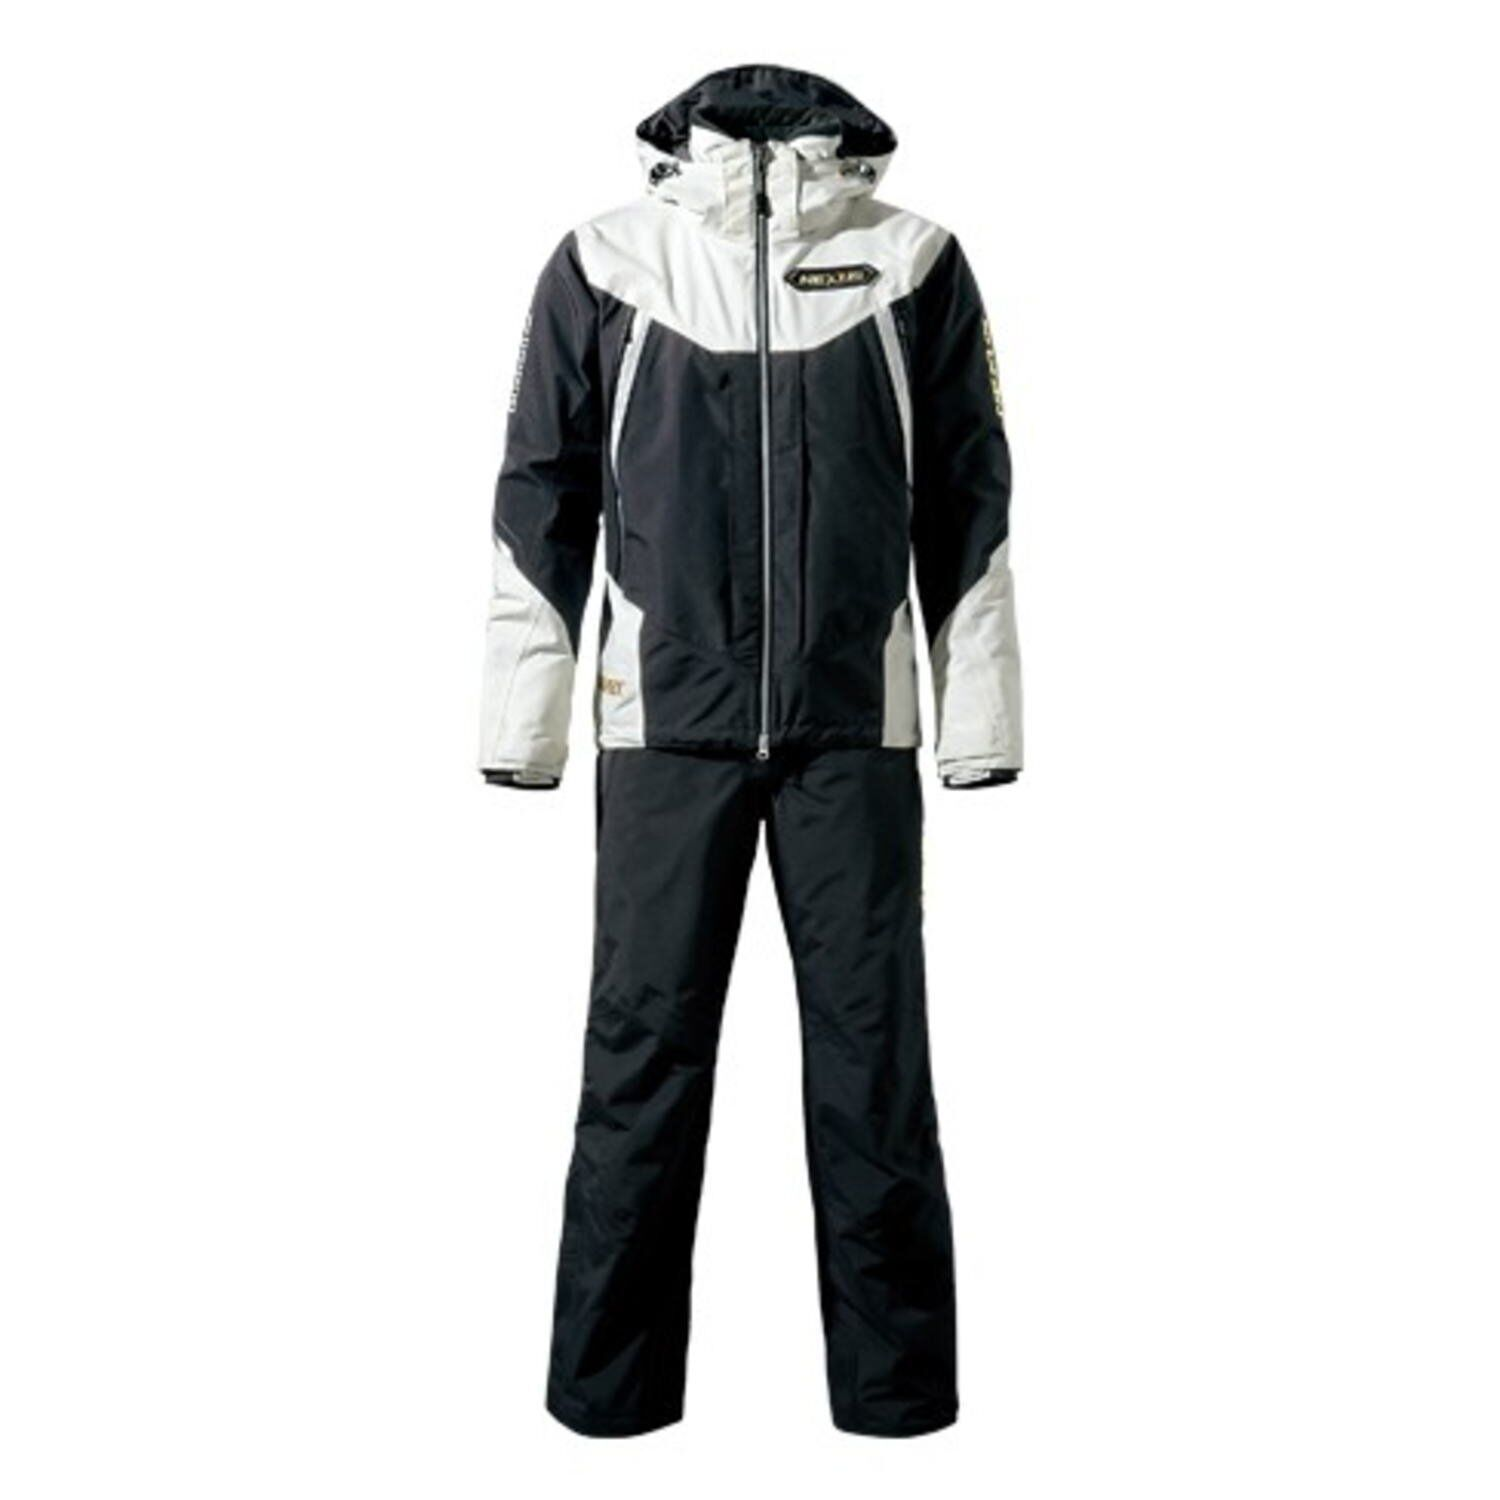 NEW Shimano Japan NEXUS Gore-Tex cold weather suit RB-114M White 2XL Warm cloth